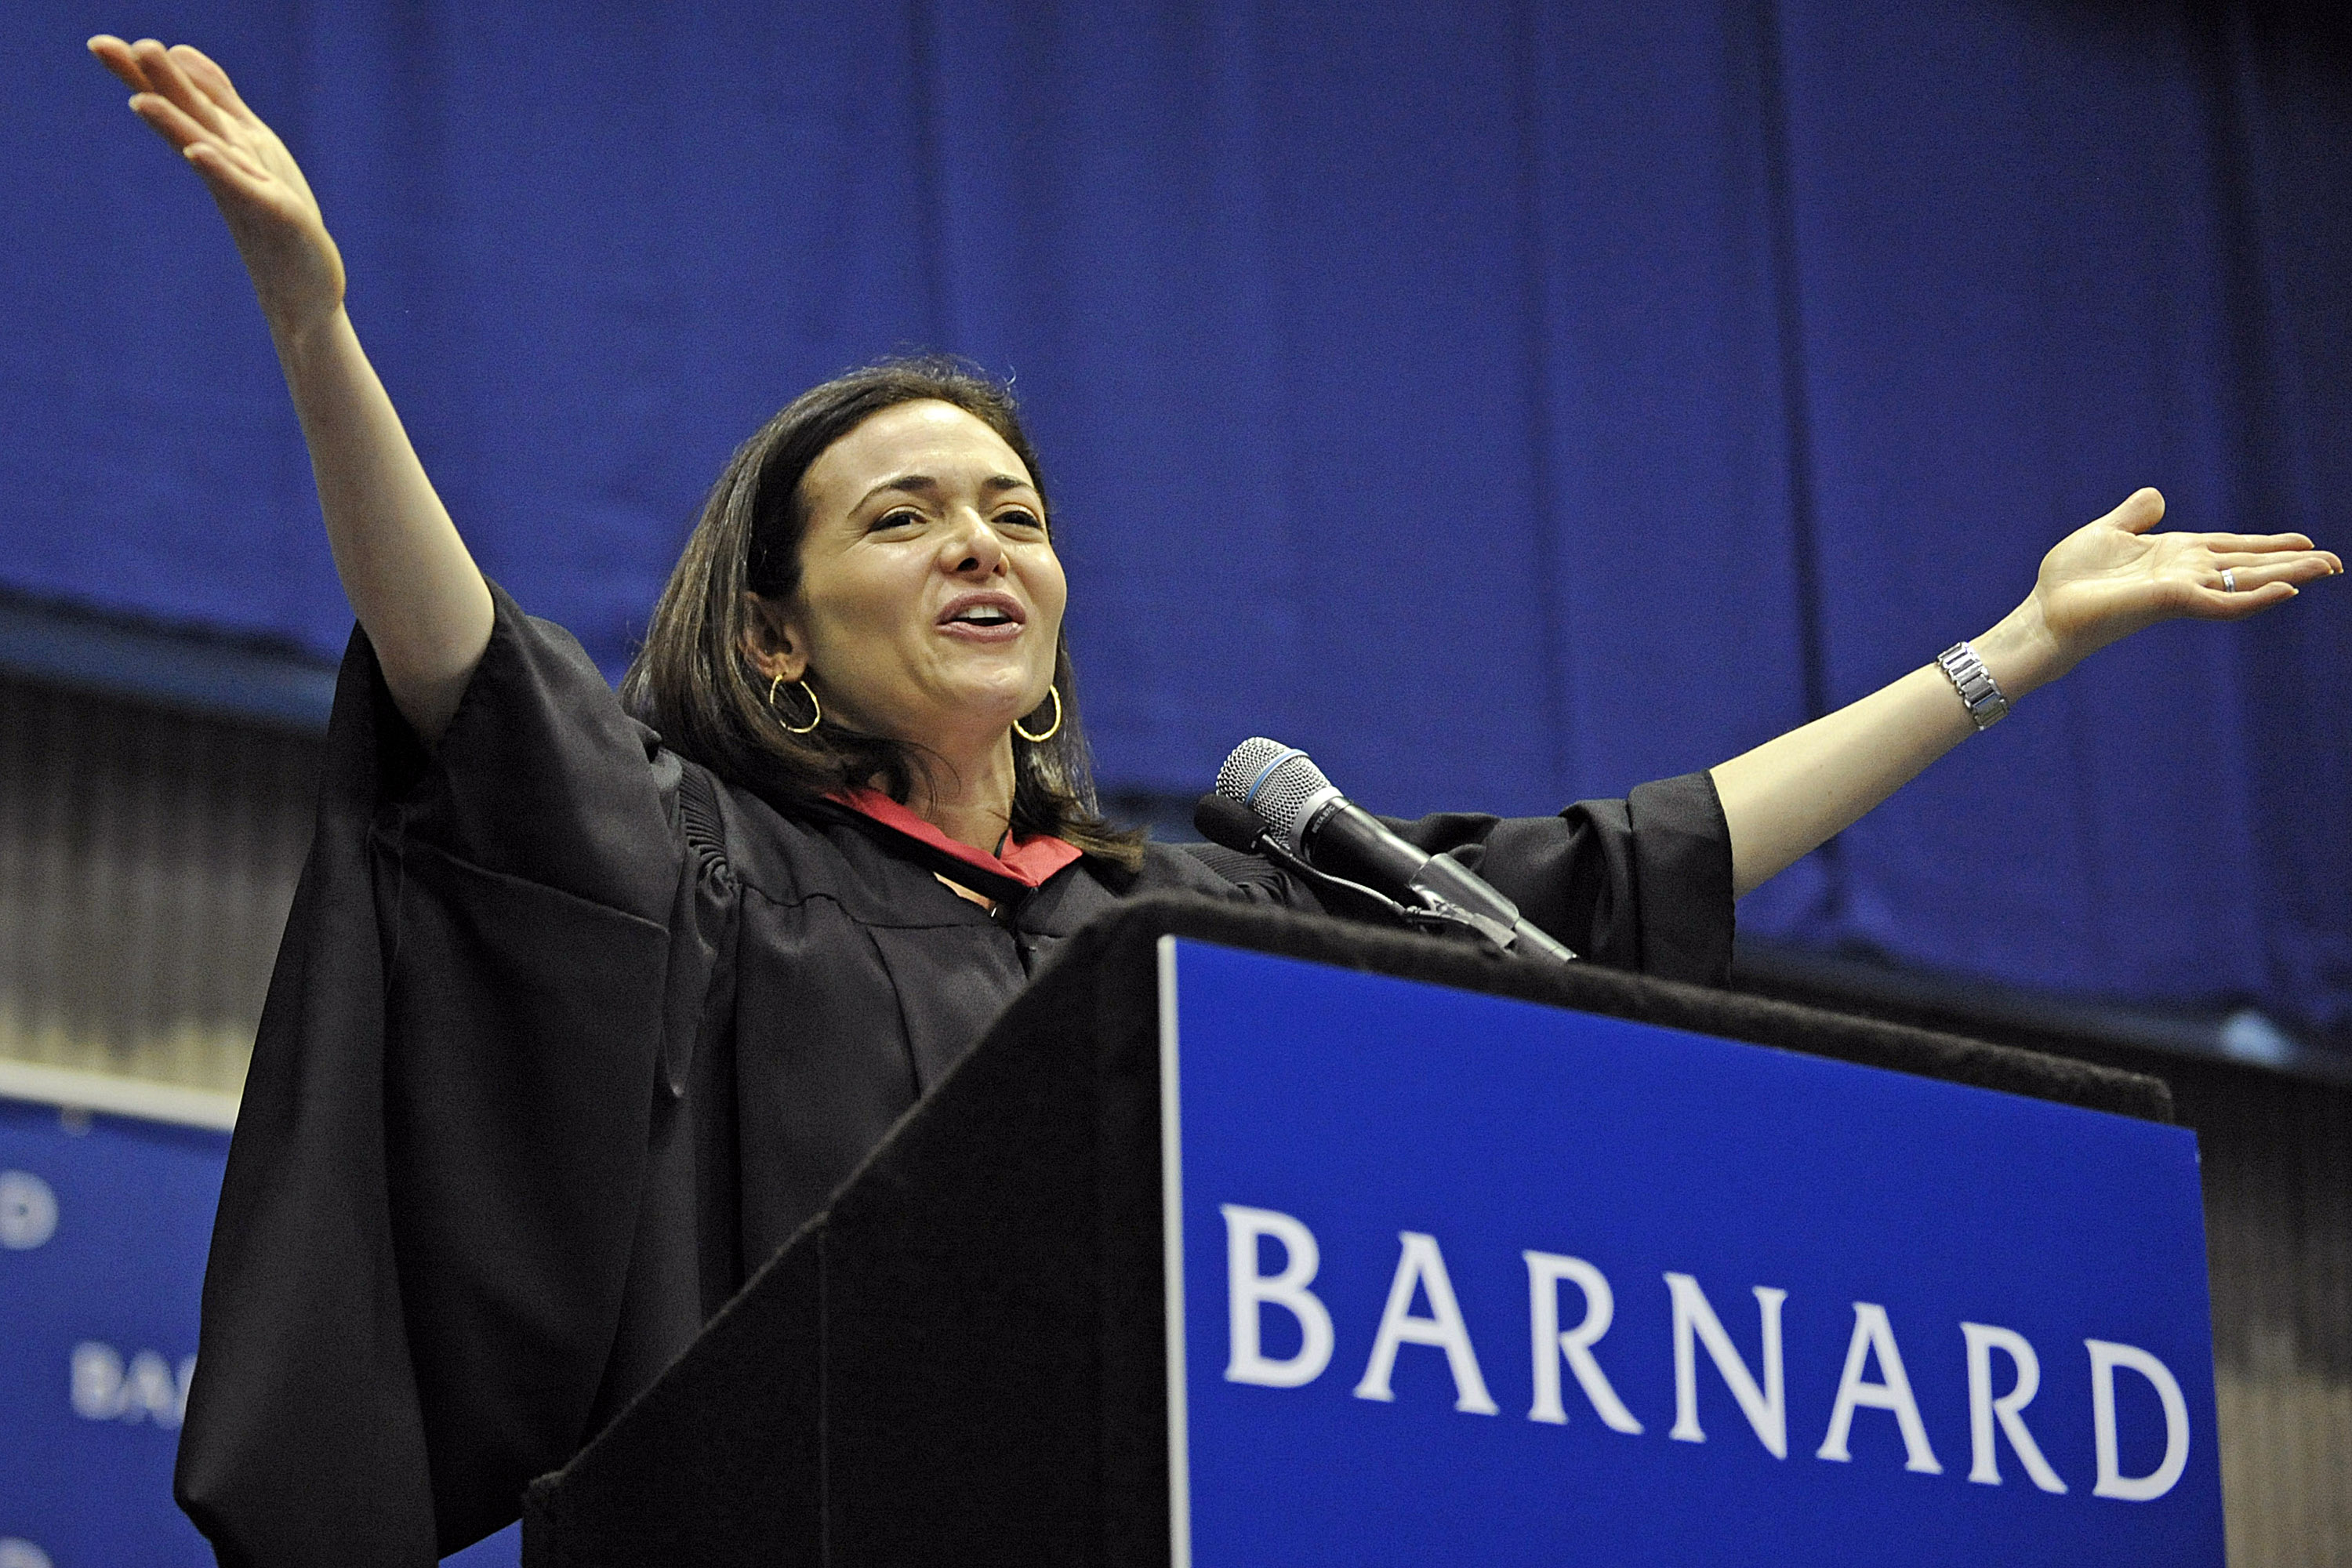 Sheryl Sandberg, chief operating officer of Facebook Inc., speaks at the Barnard College commencement ceremony in New York, U.S., on Tuesday, May 17, 2011.